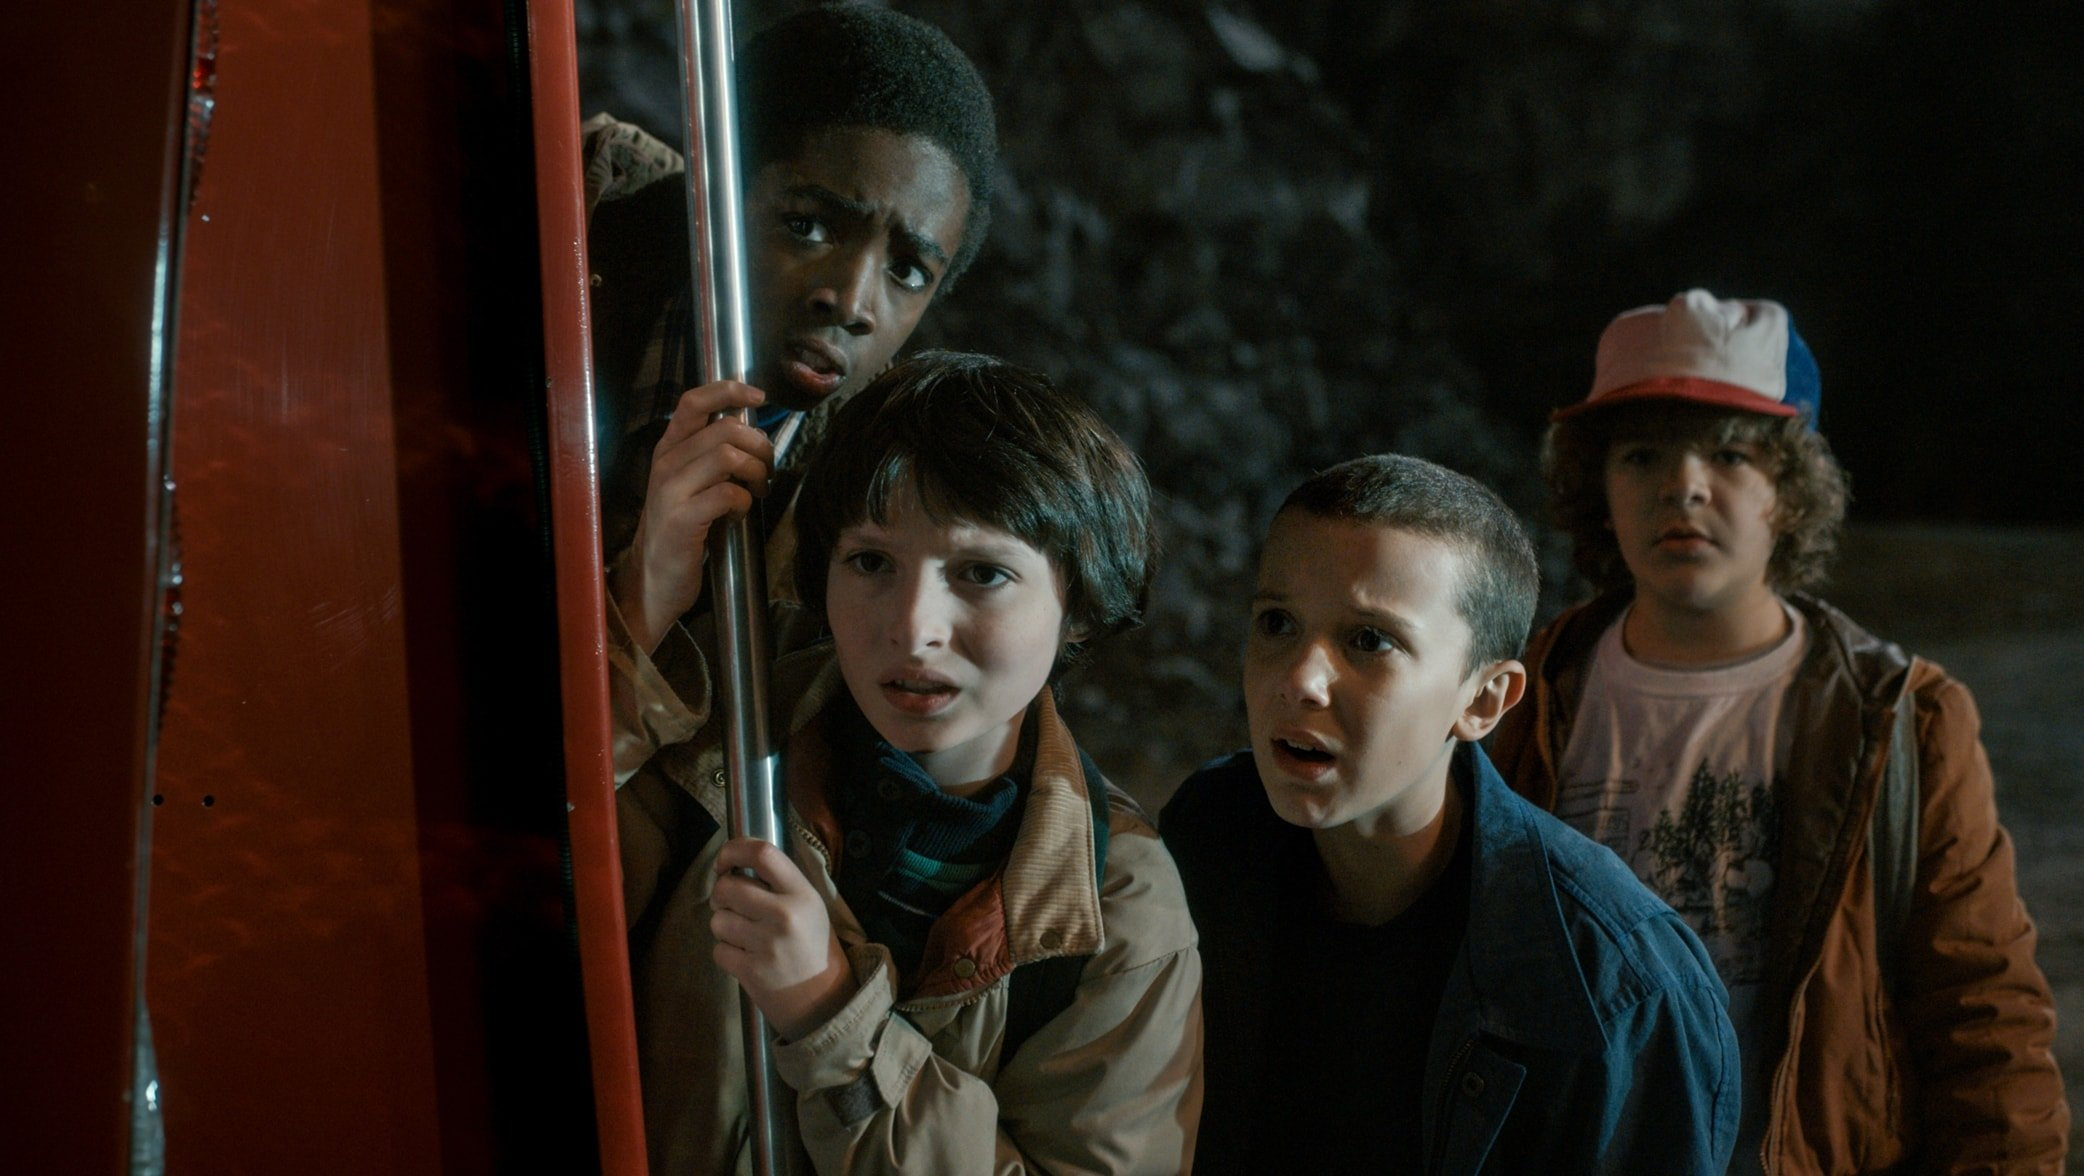 Caleb McLaughlin, Finn Wolfhard, Millie Bobby Brown, and Gaten Matarazzo in the science fiction horror mystery-thriller streaming television series Stranger Things